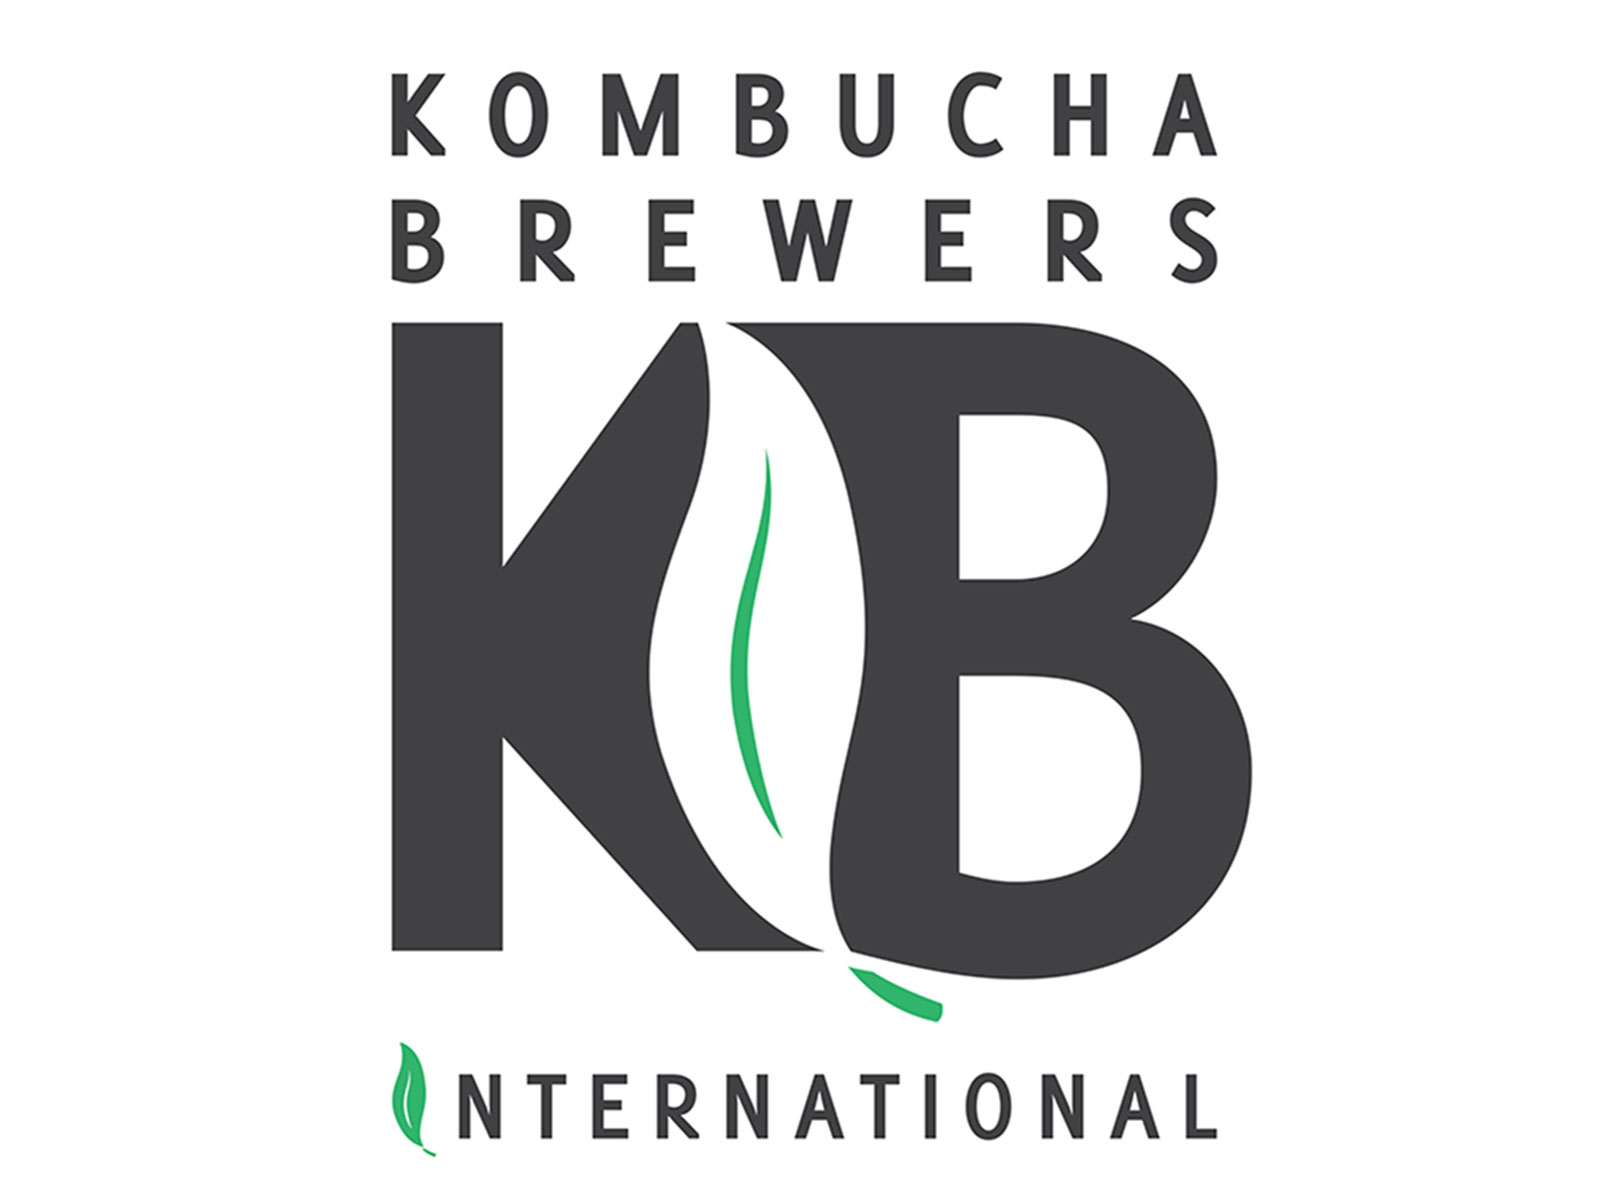 Kombucha Brewers International